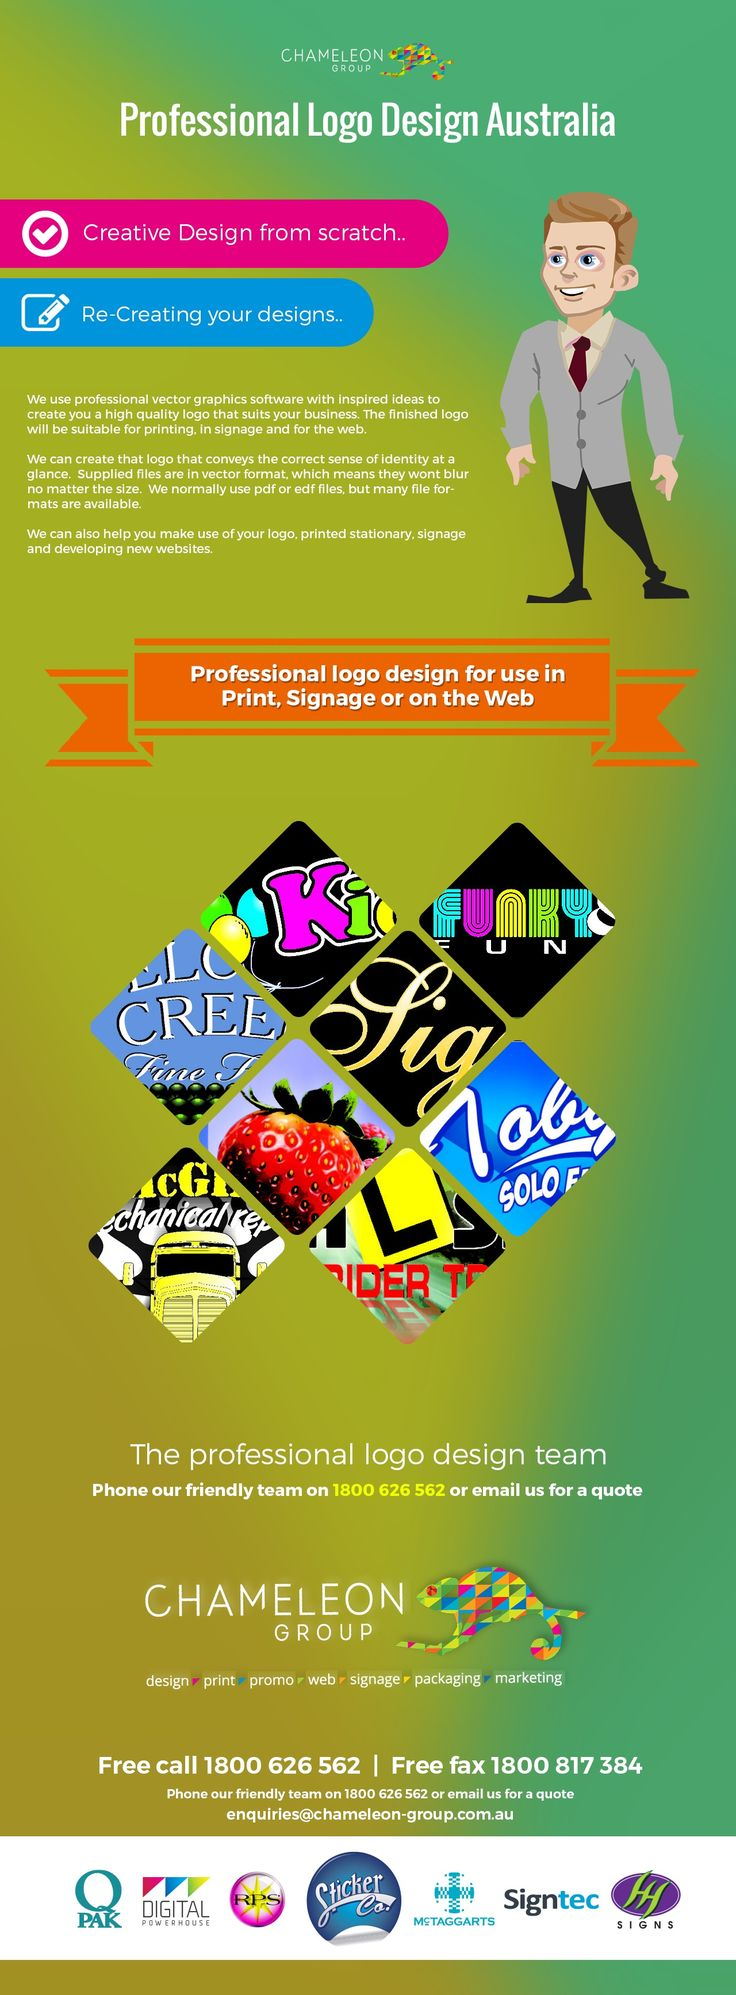 Logosmartz custom logo maker 5 0 review and download - We Use Professional Vector Graphics Software With Inspired Ideas To Create You A High Quality Logo That Suits Your Business The Finished Logo Will Be